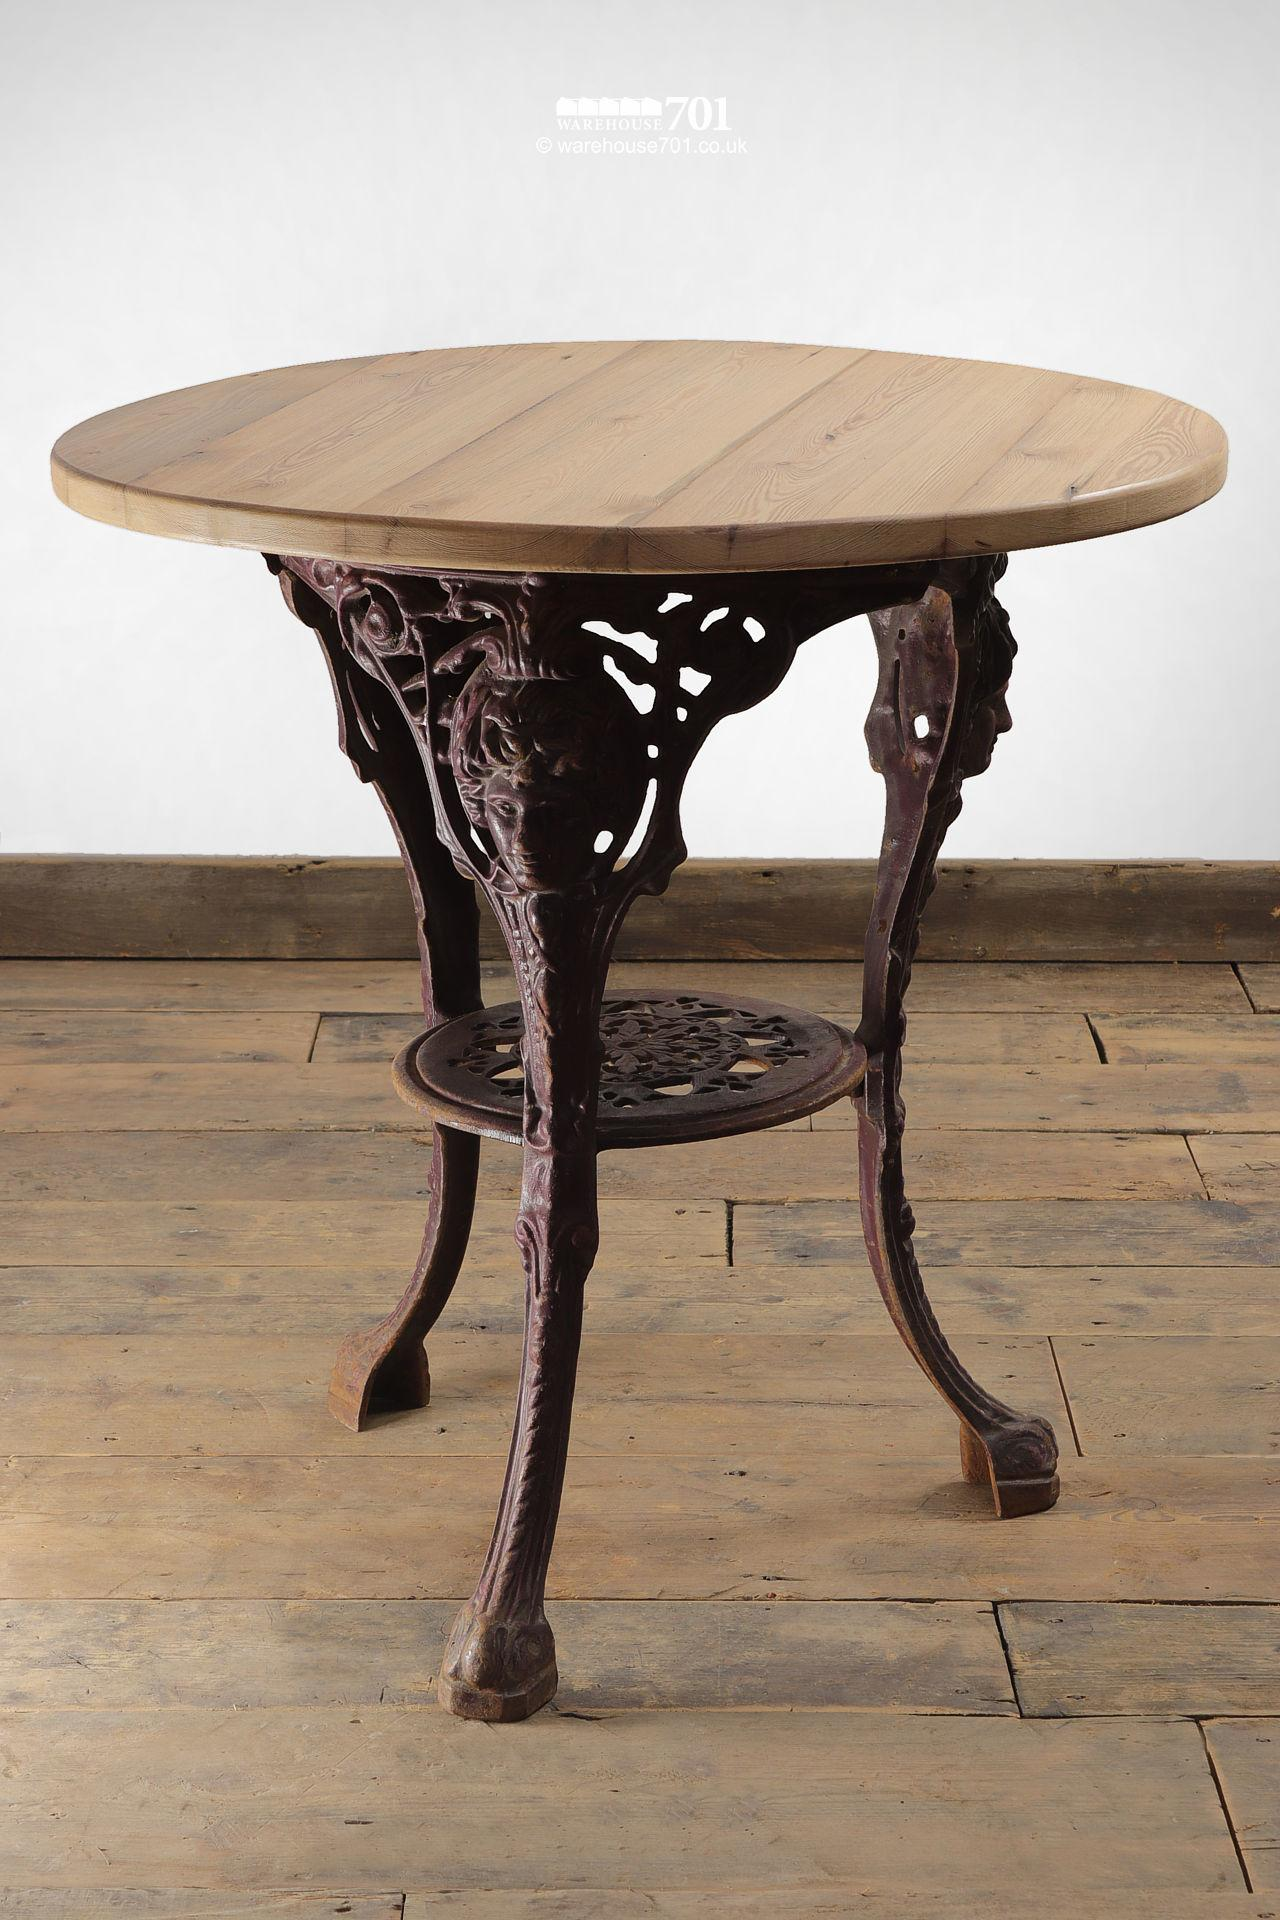 Ornate Cast Iron and Reclaimed Wood Cafe Tables #5